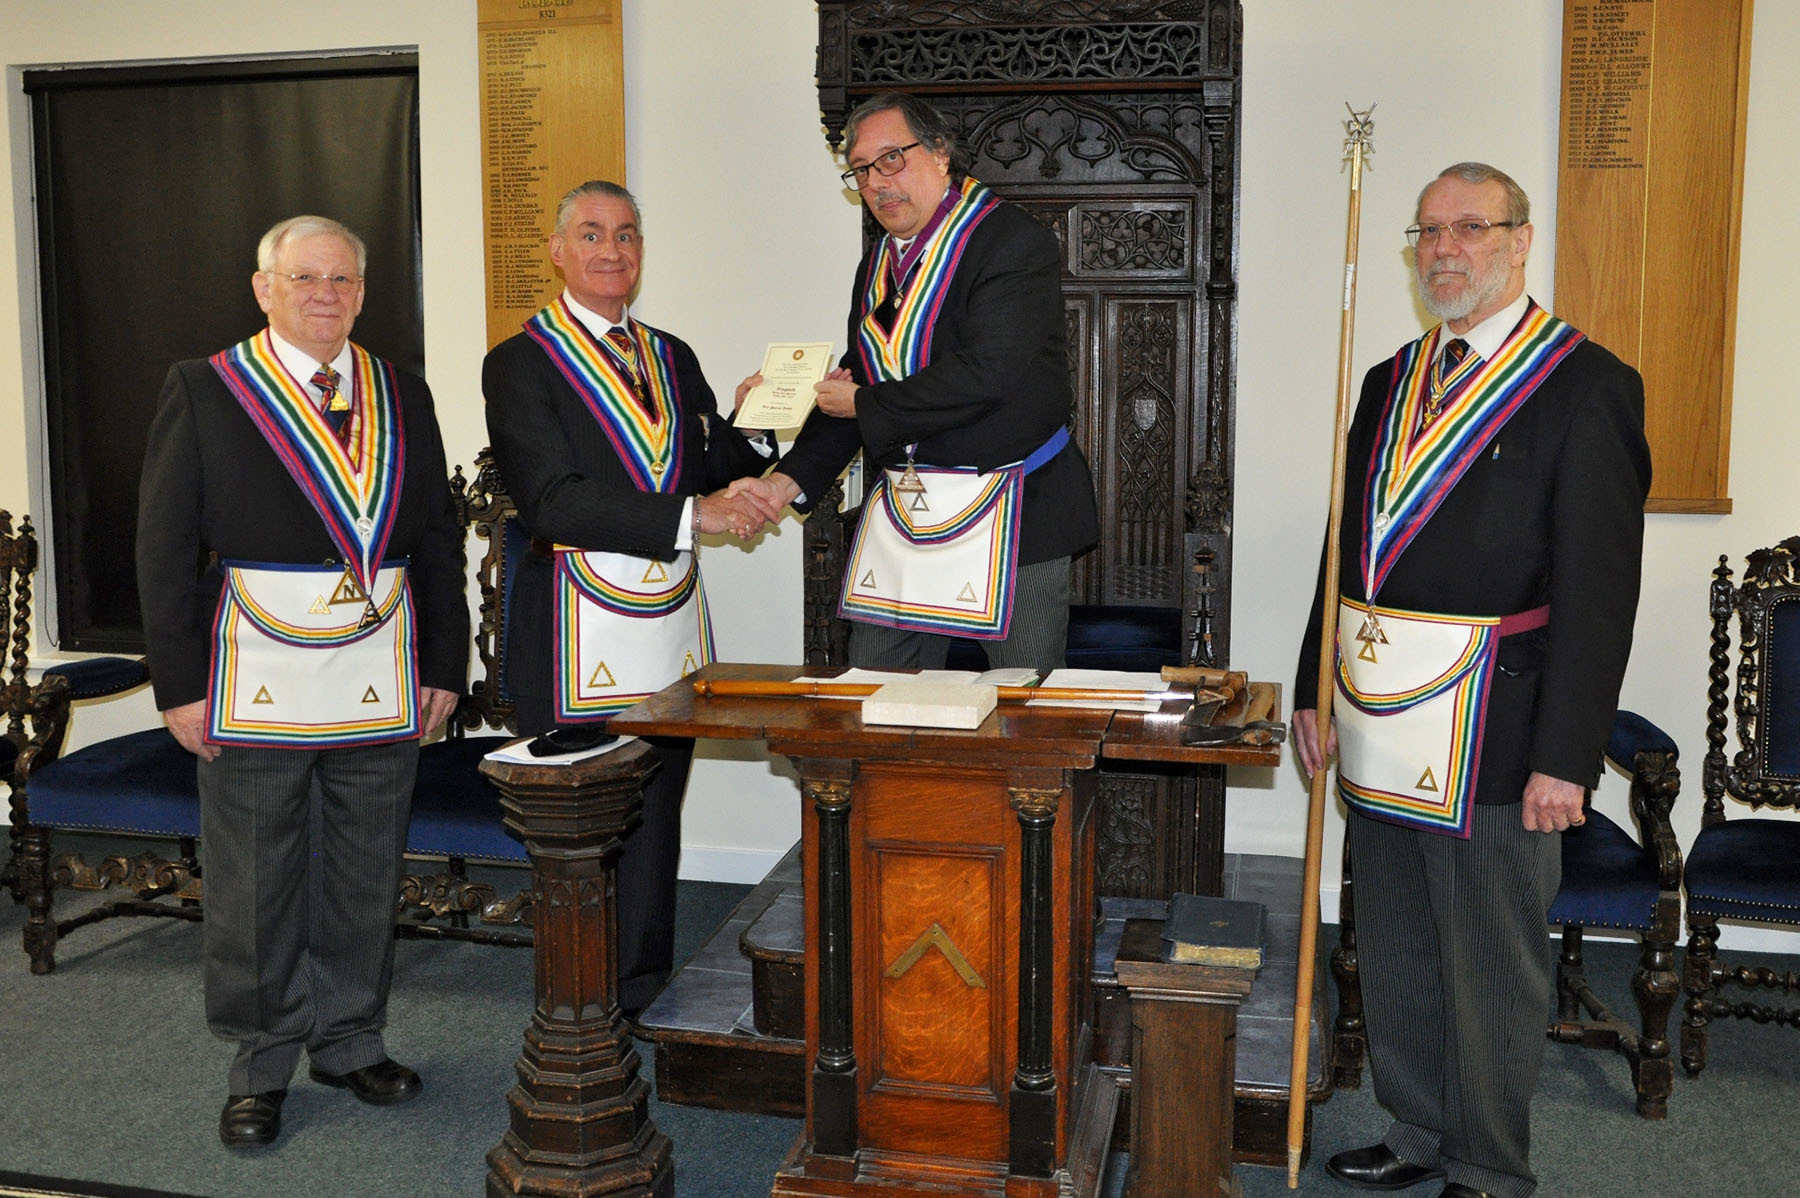 An Official Visit to Lingfield Lodge